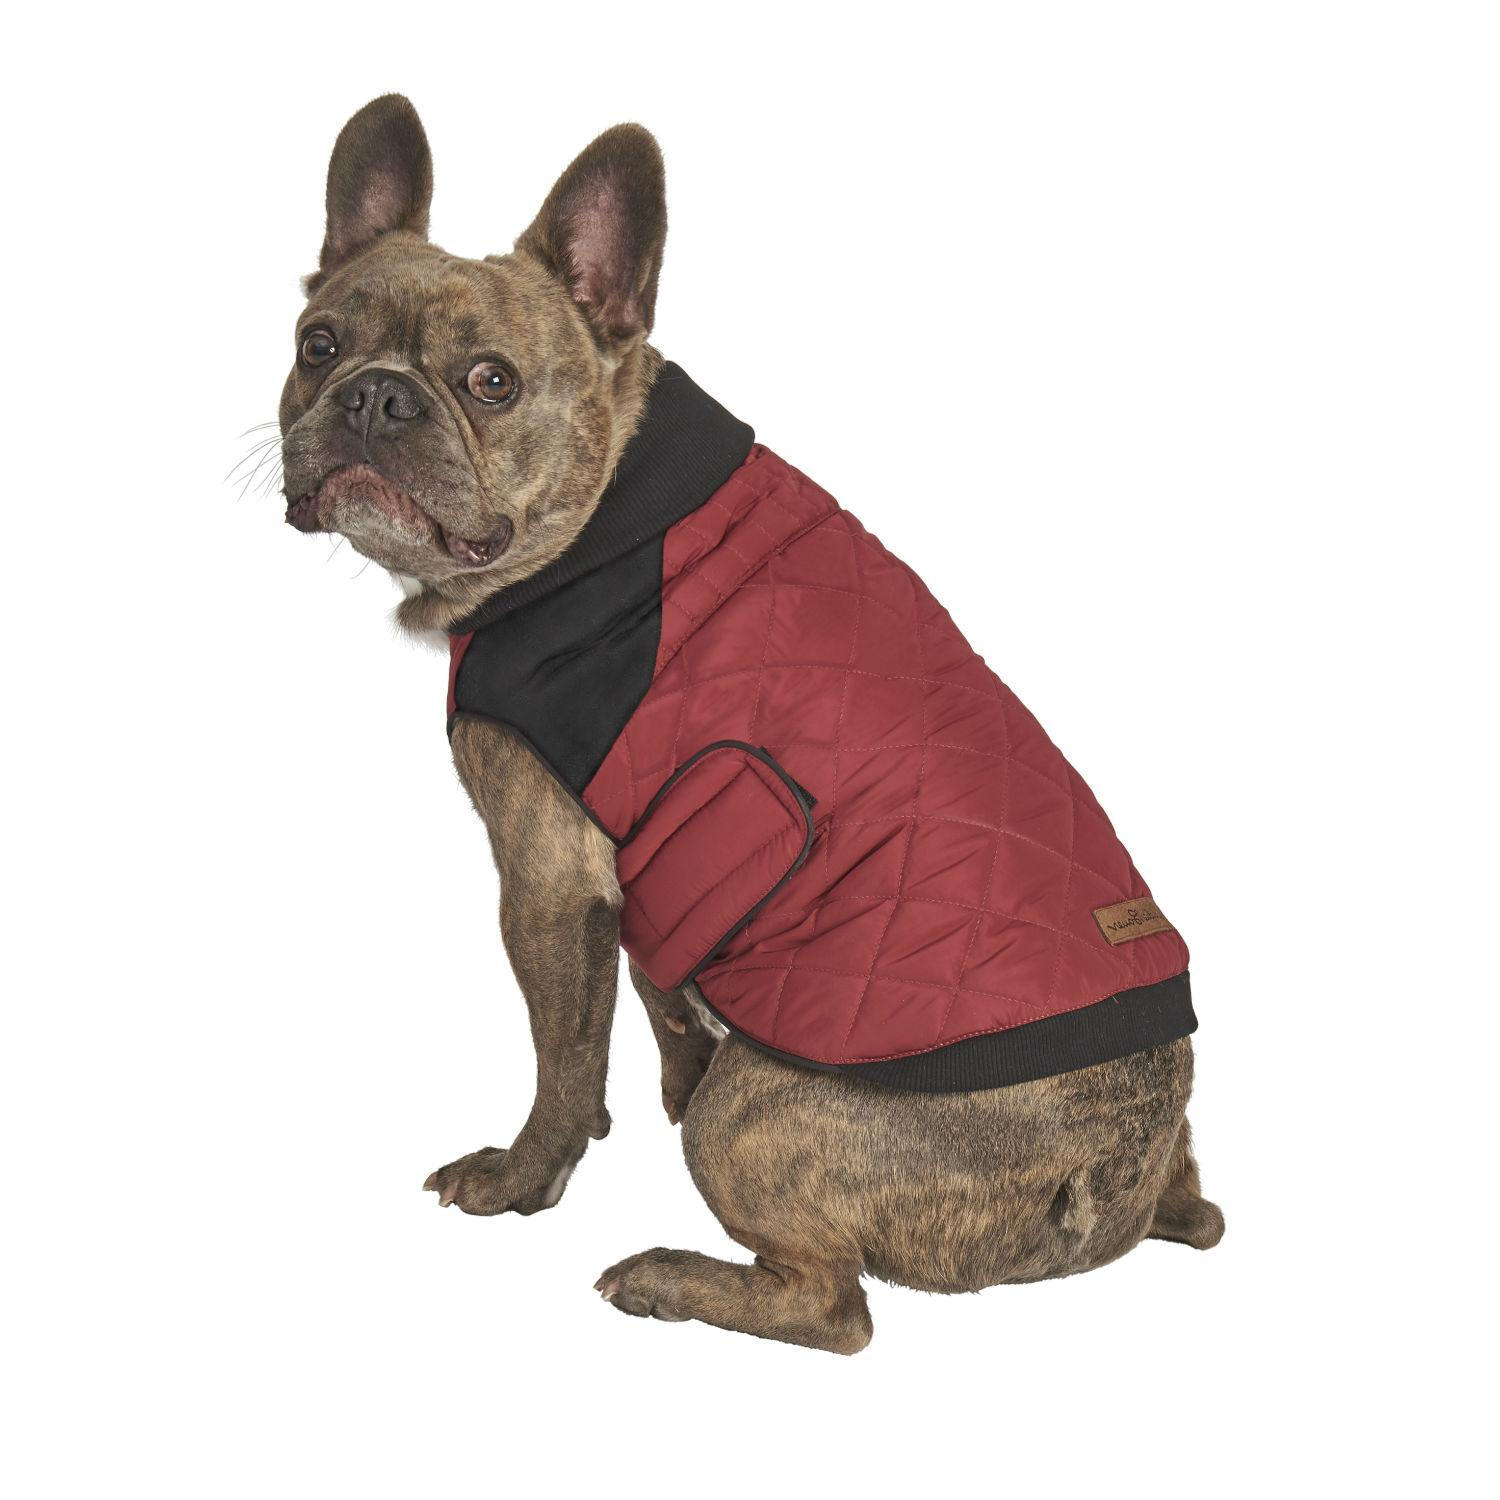 Eddie Bauer Graham Point Hunter's Dog Jacket - Brick